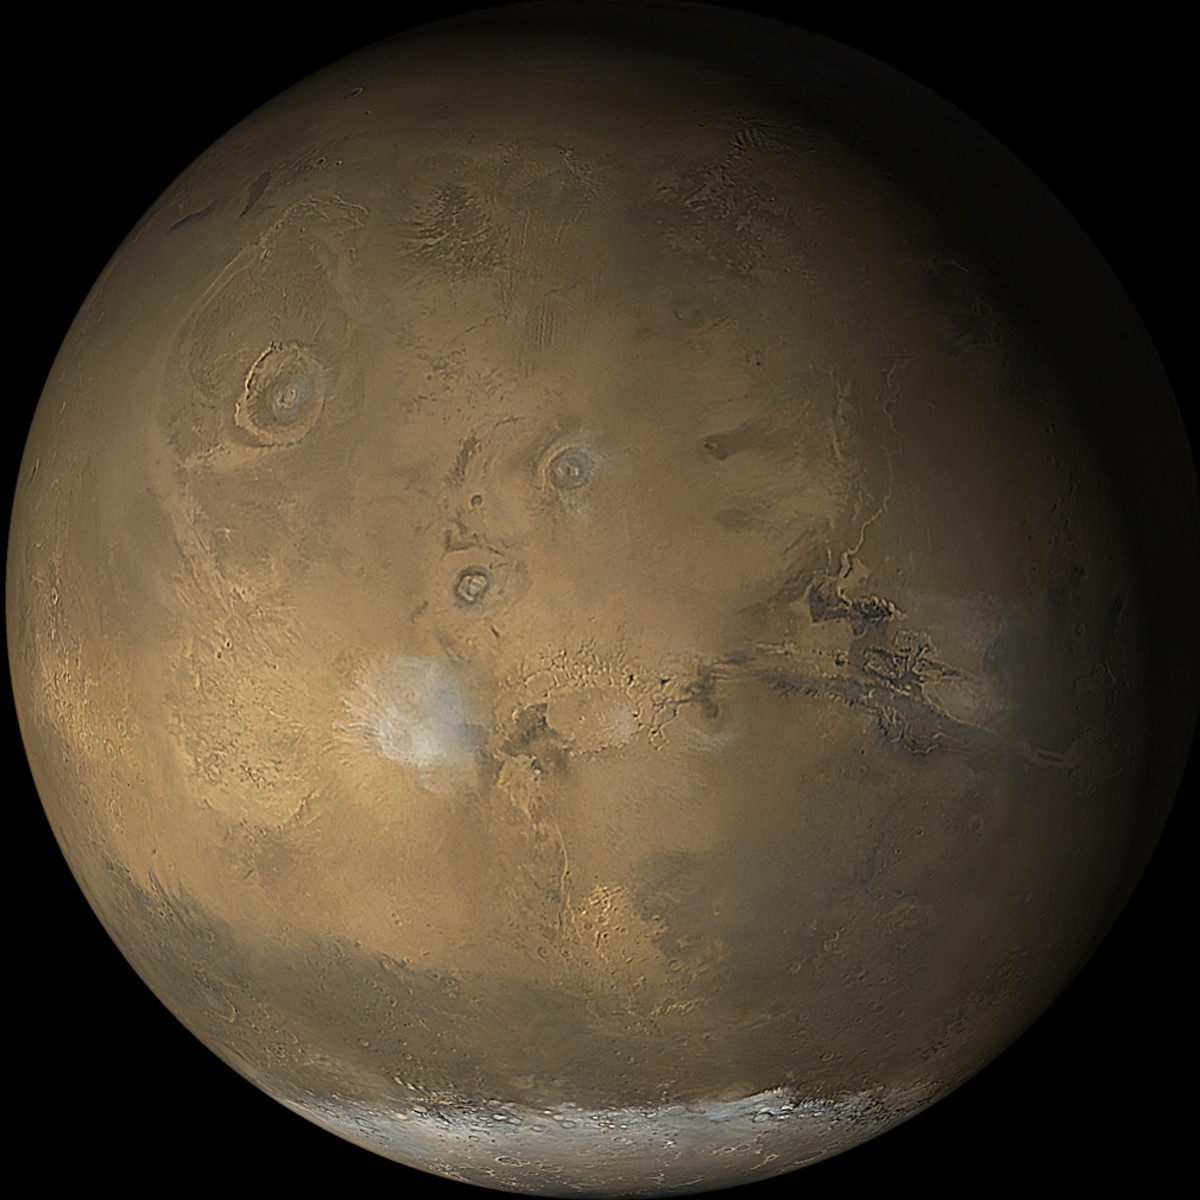 See that page for 6 different MGS views of Mars getting swallowed by a monster dust storm.